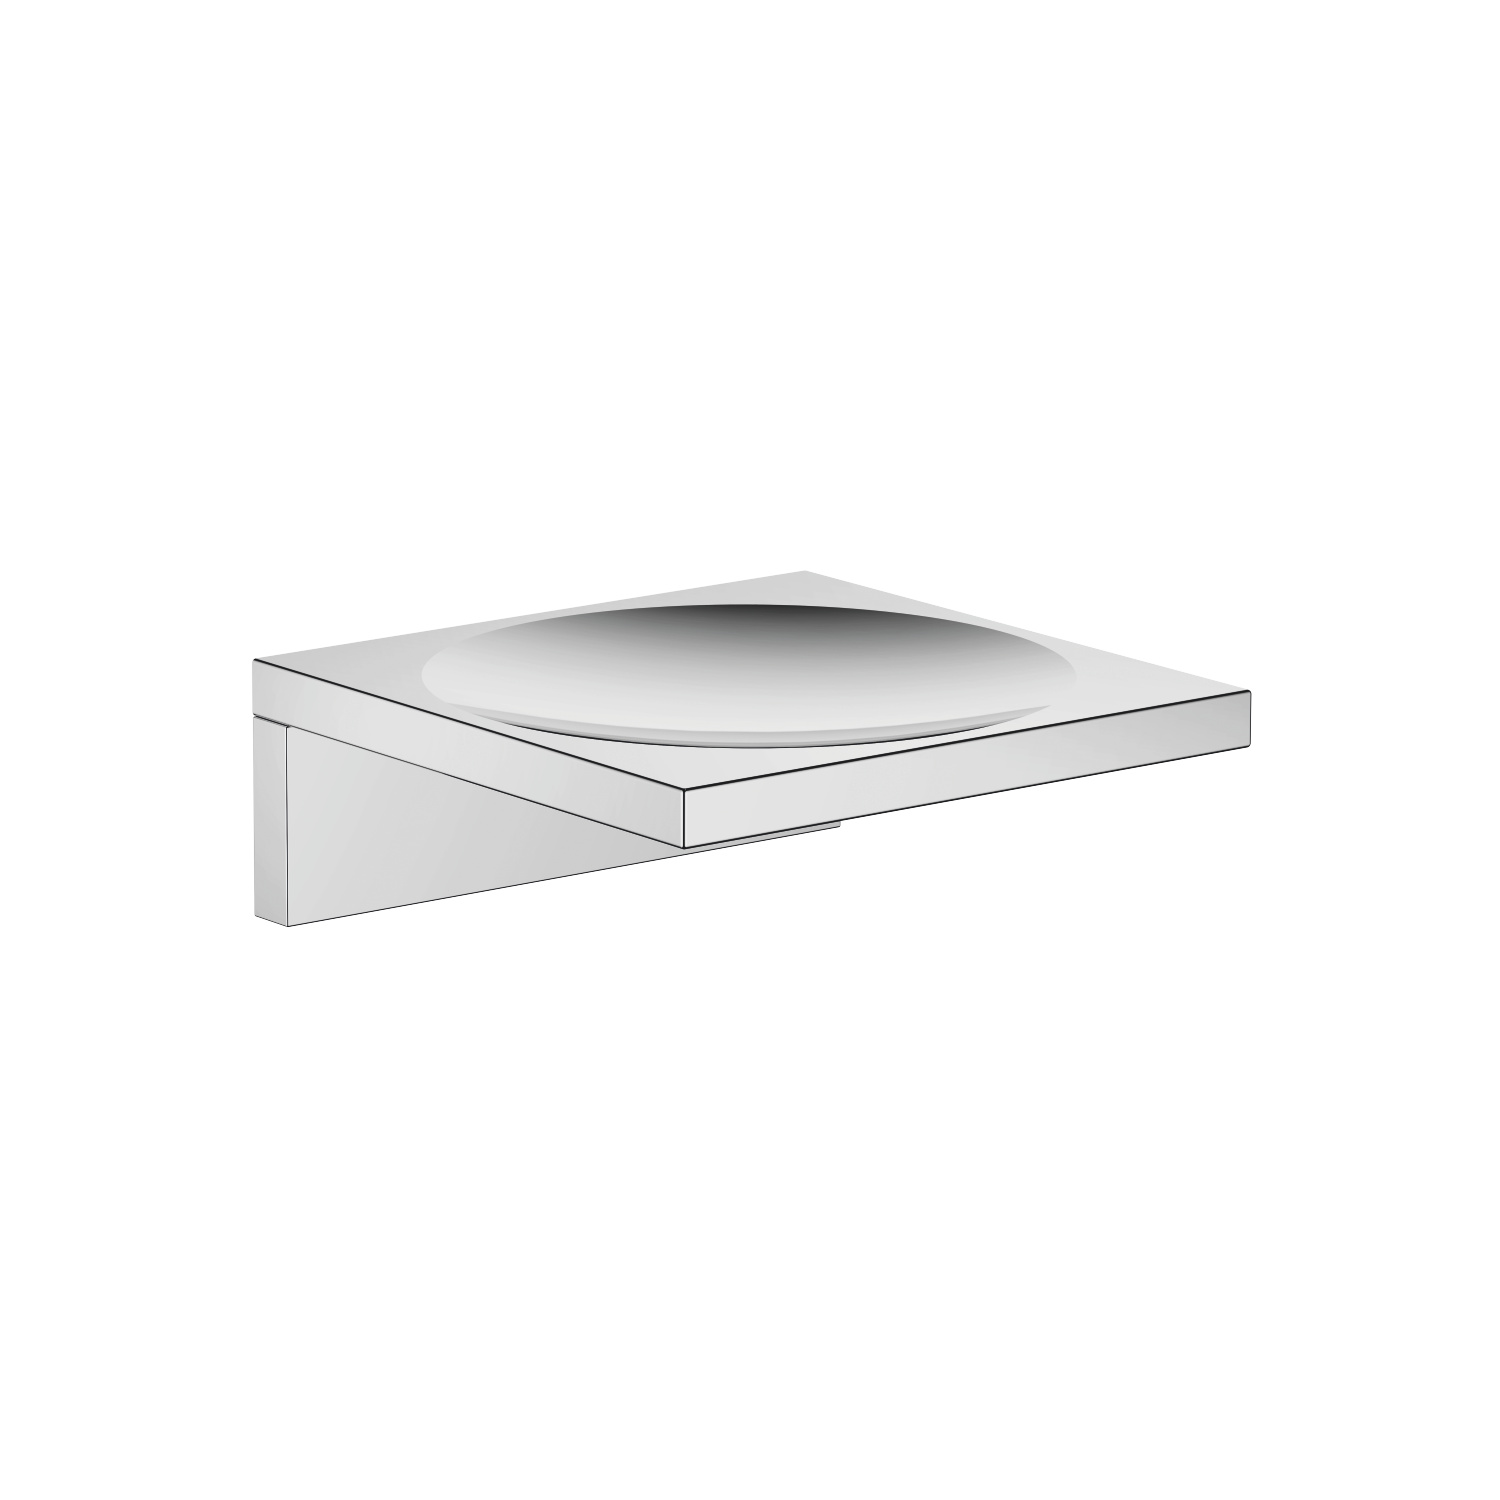 Soap dish wall model - polished chrome